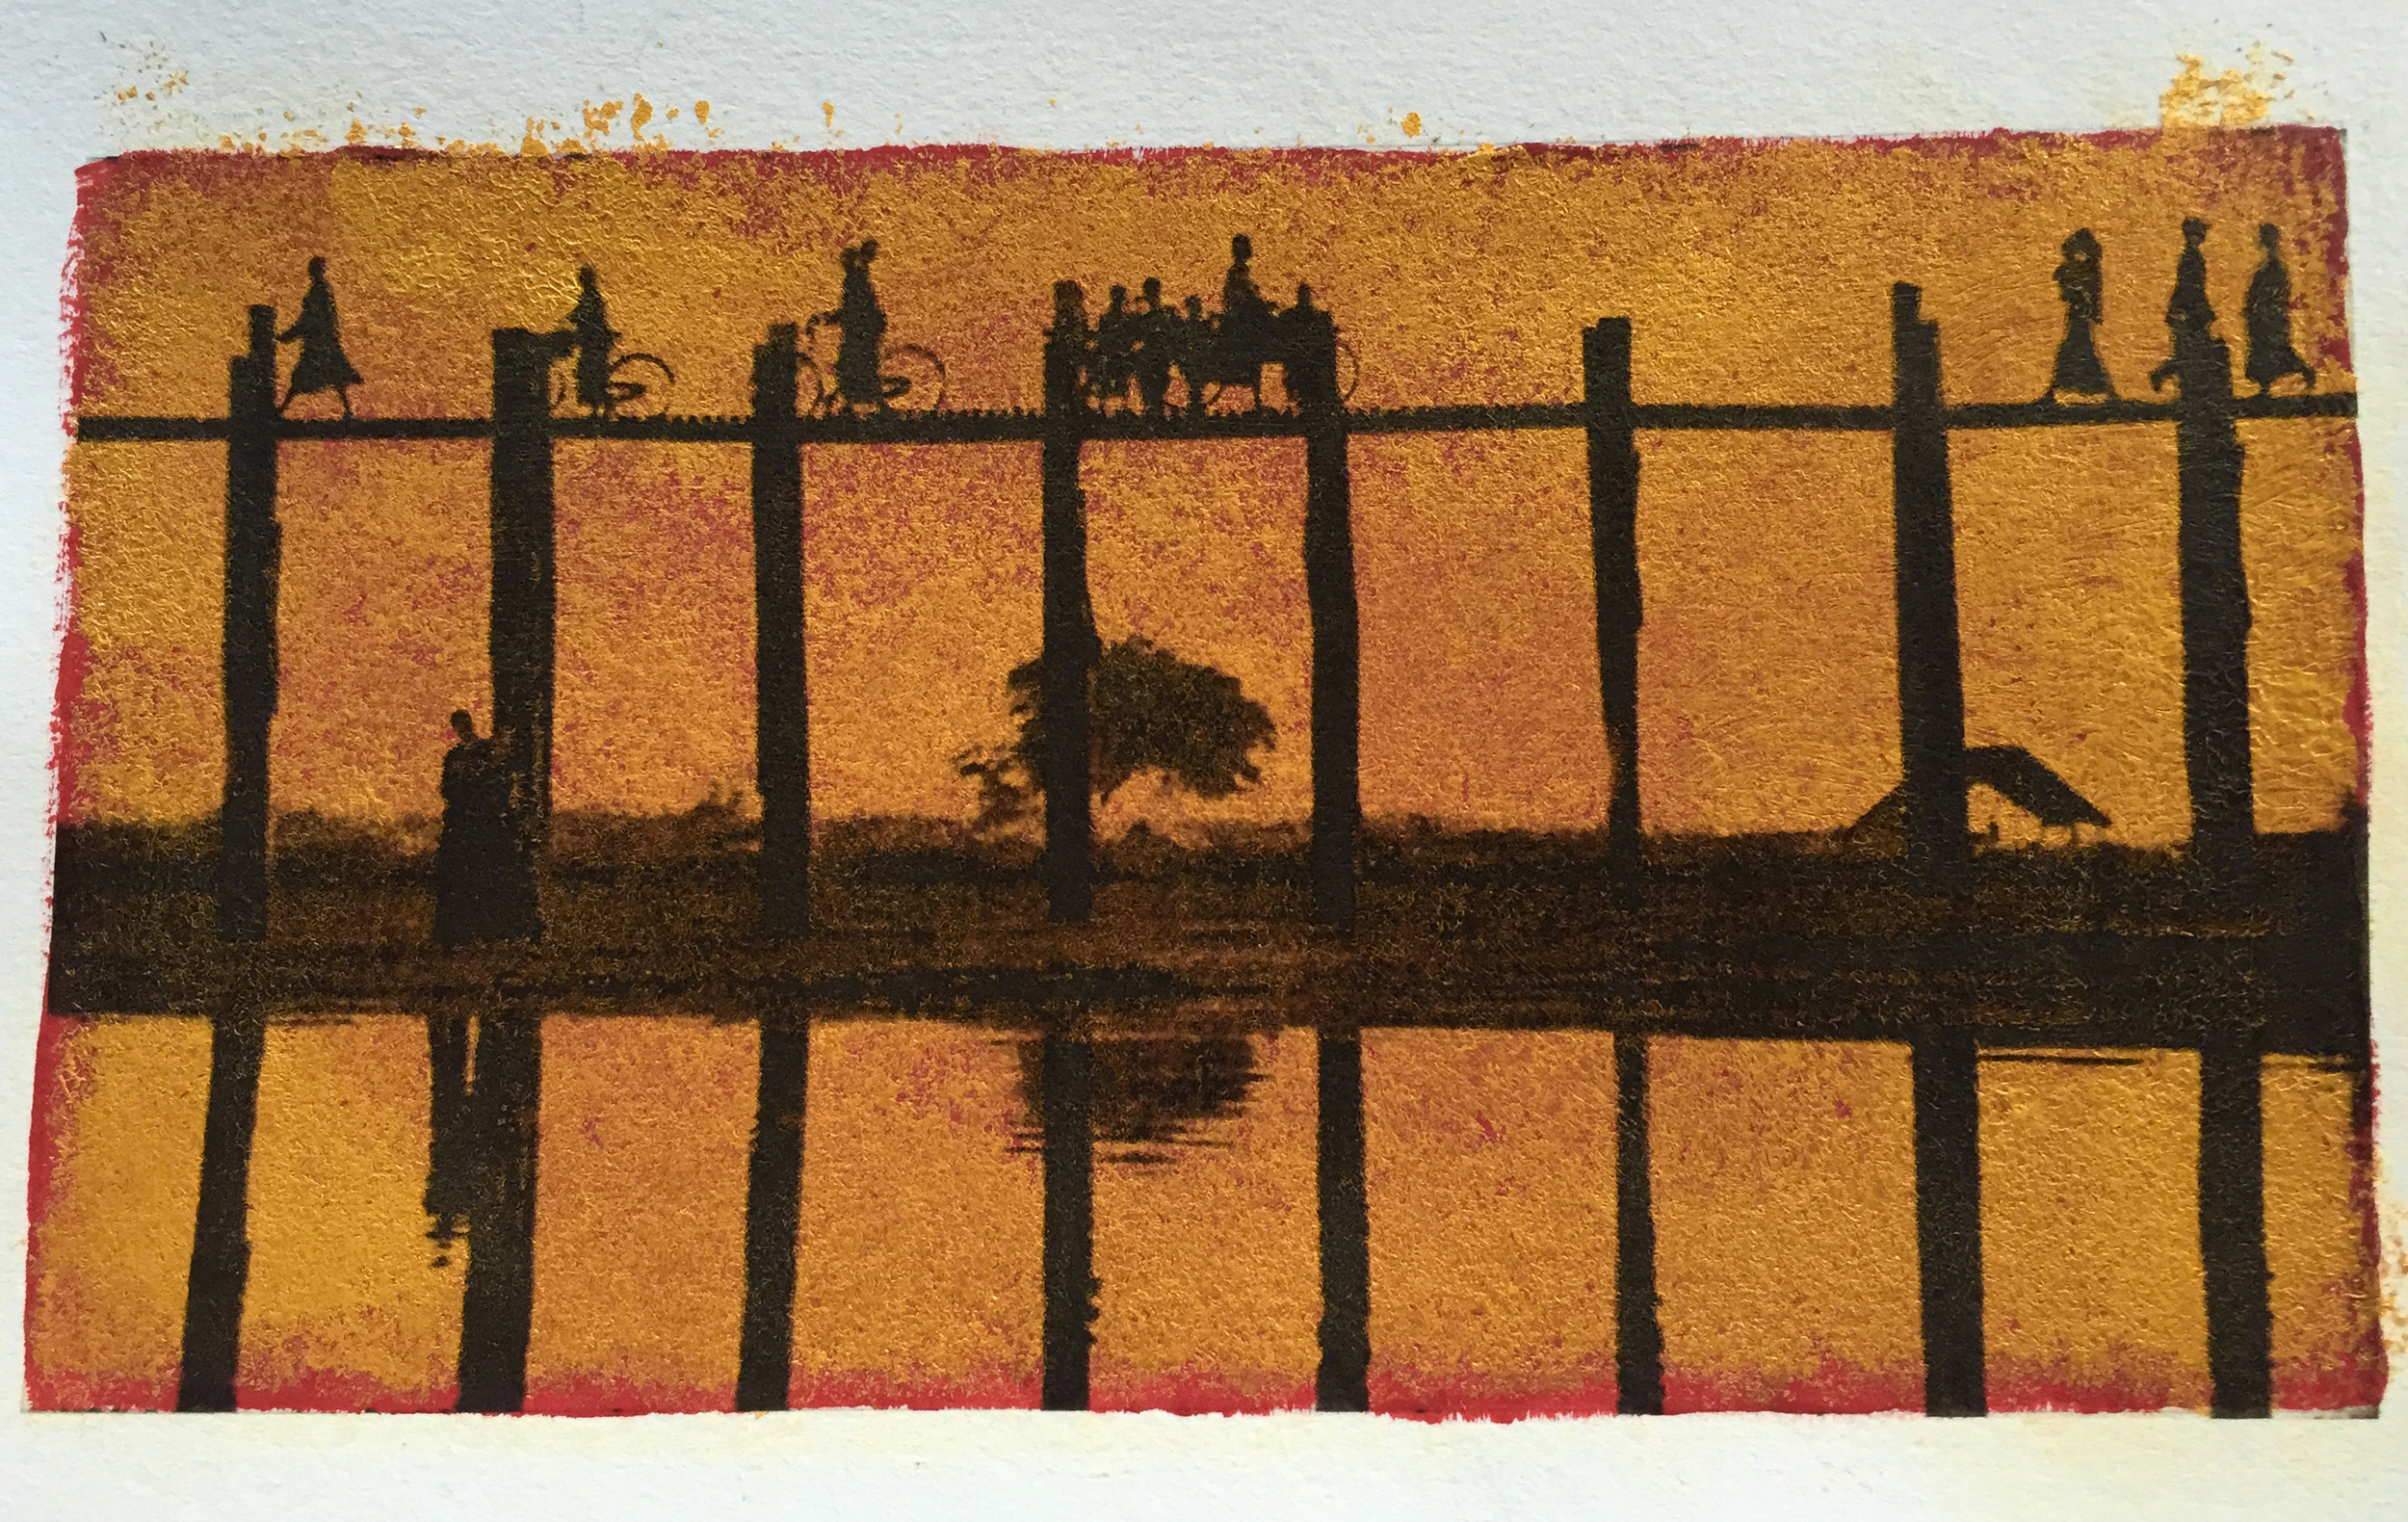 U-Bein Bridge Altered  (Photo Credit: Felice Willat)